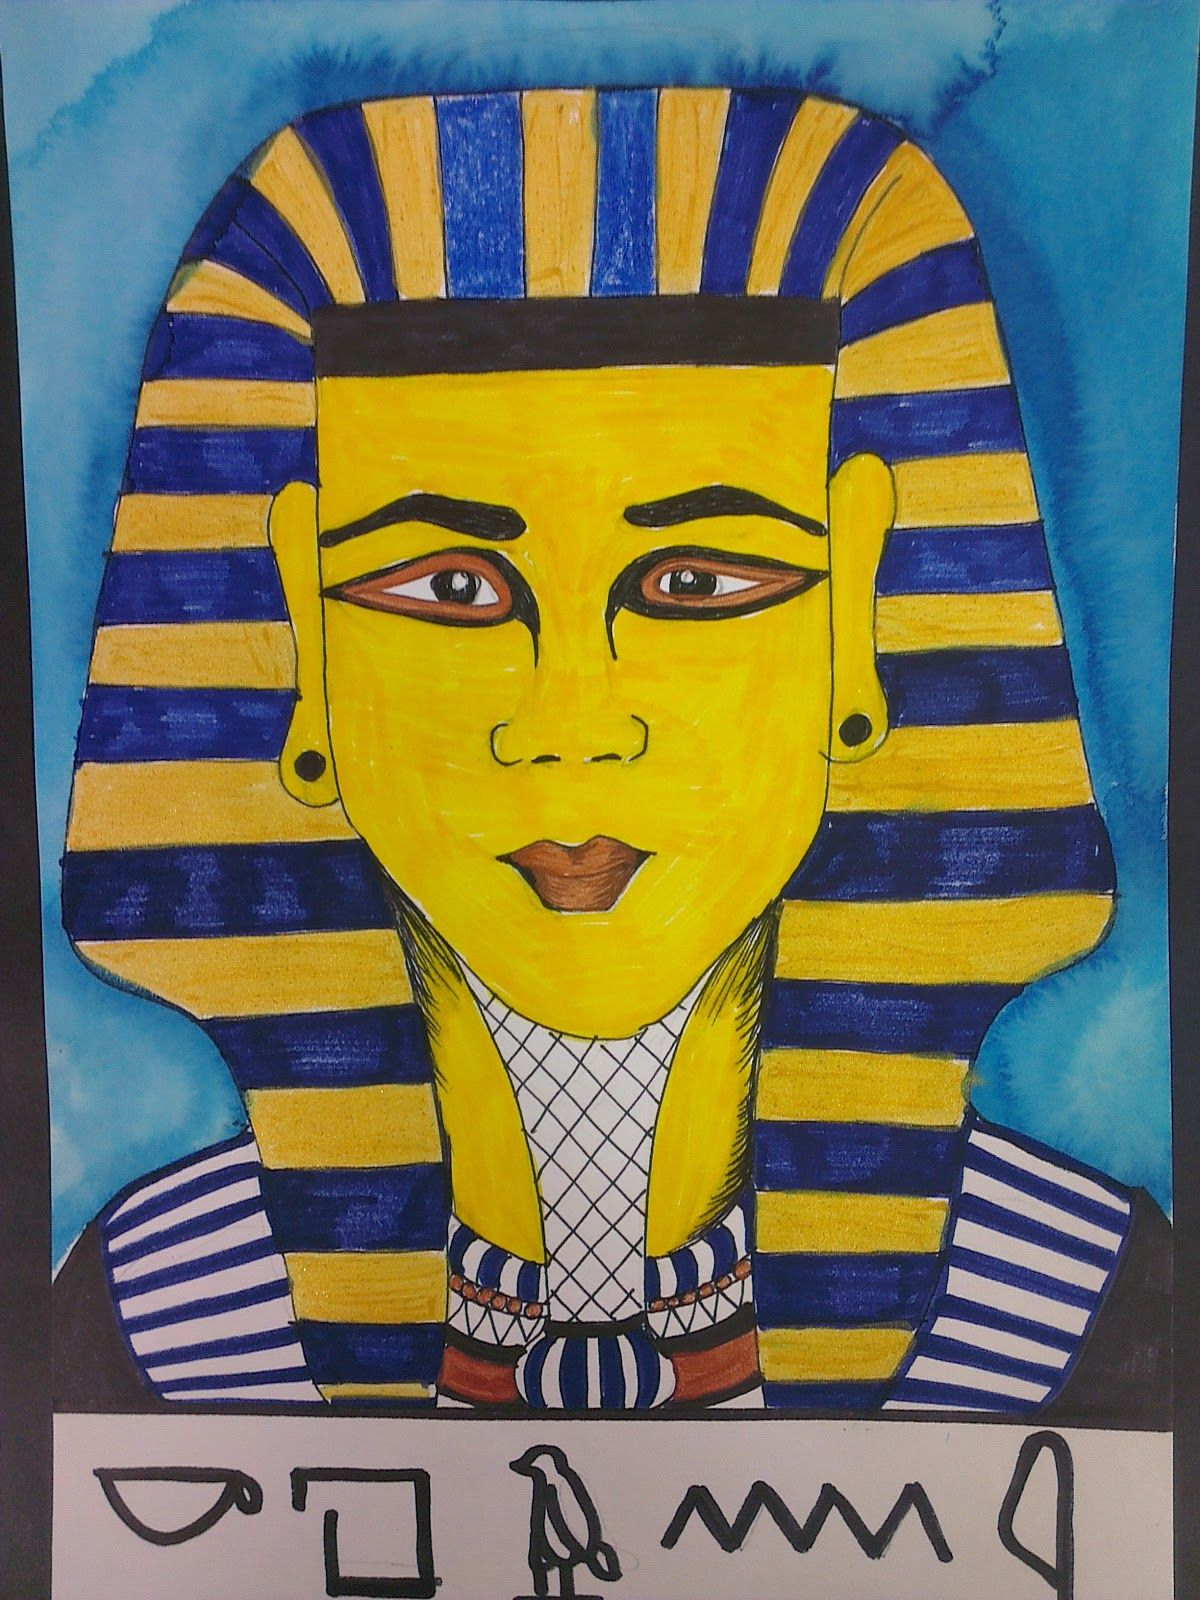 King Tut's Portrait  Step-by-Step photos at:  www.onceuponanartroom.com